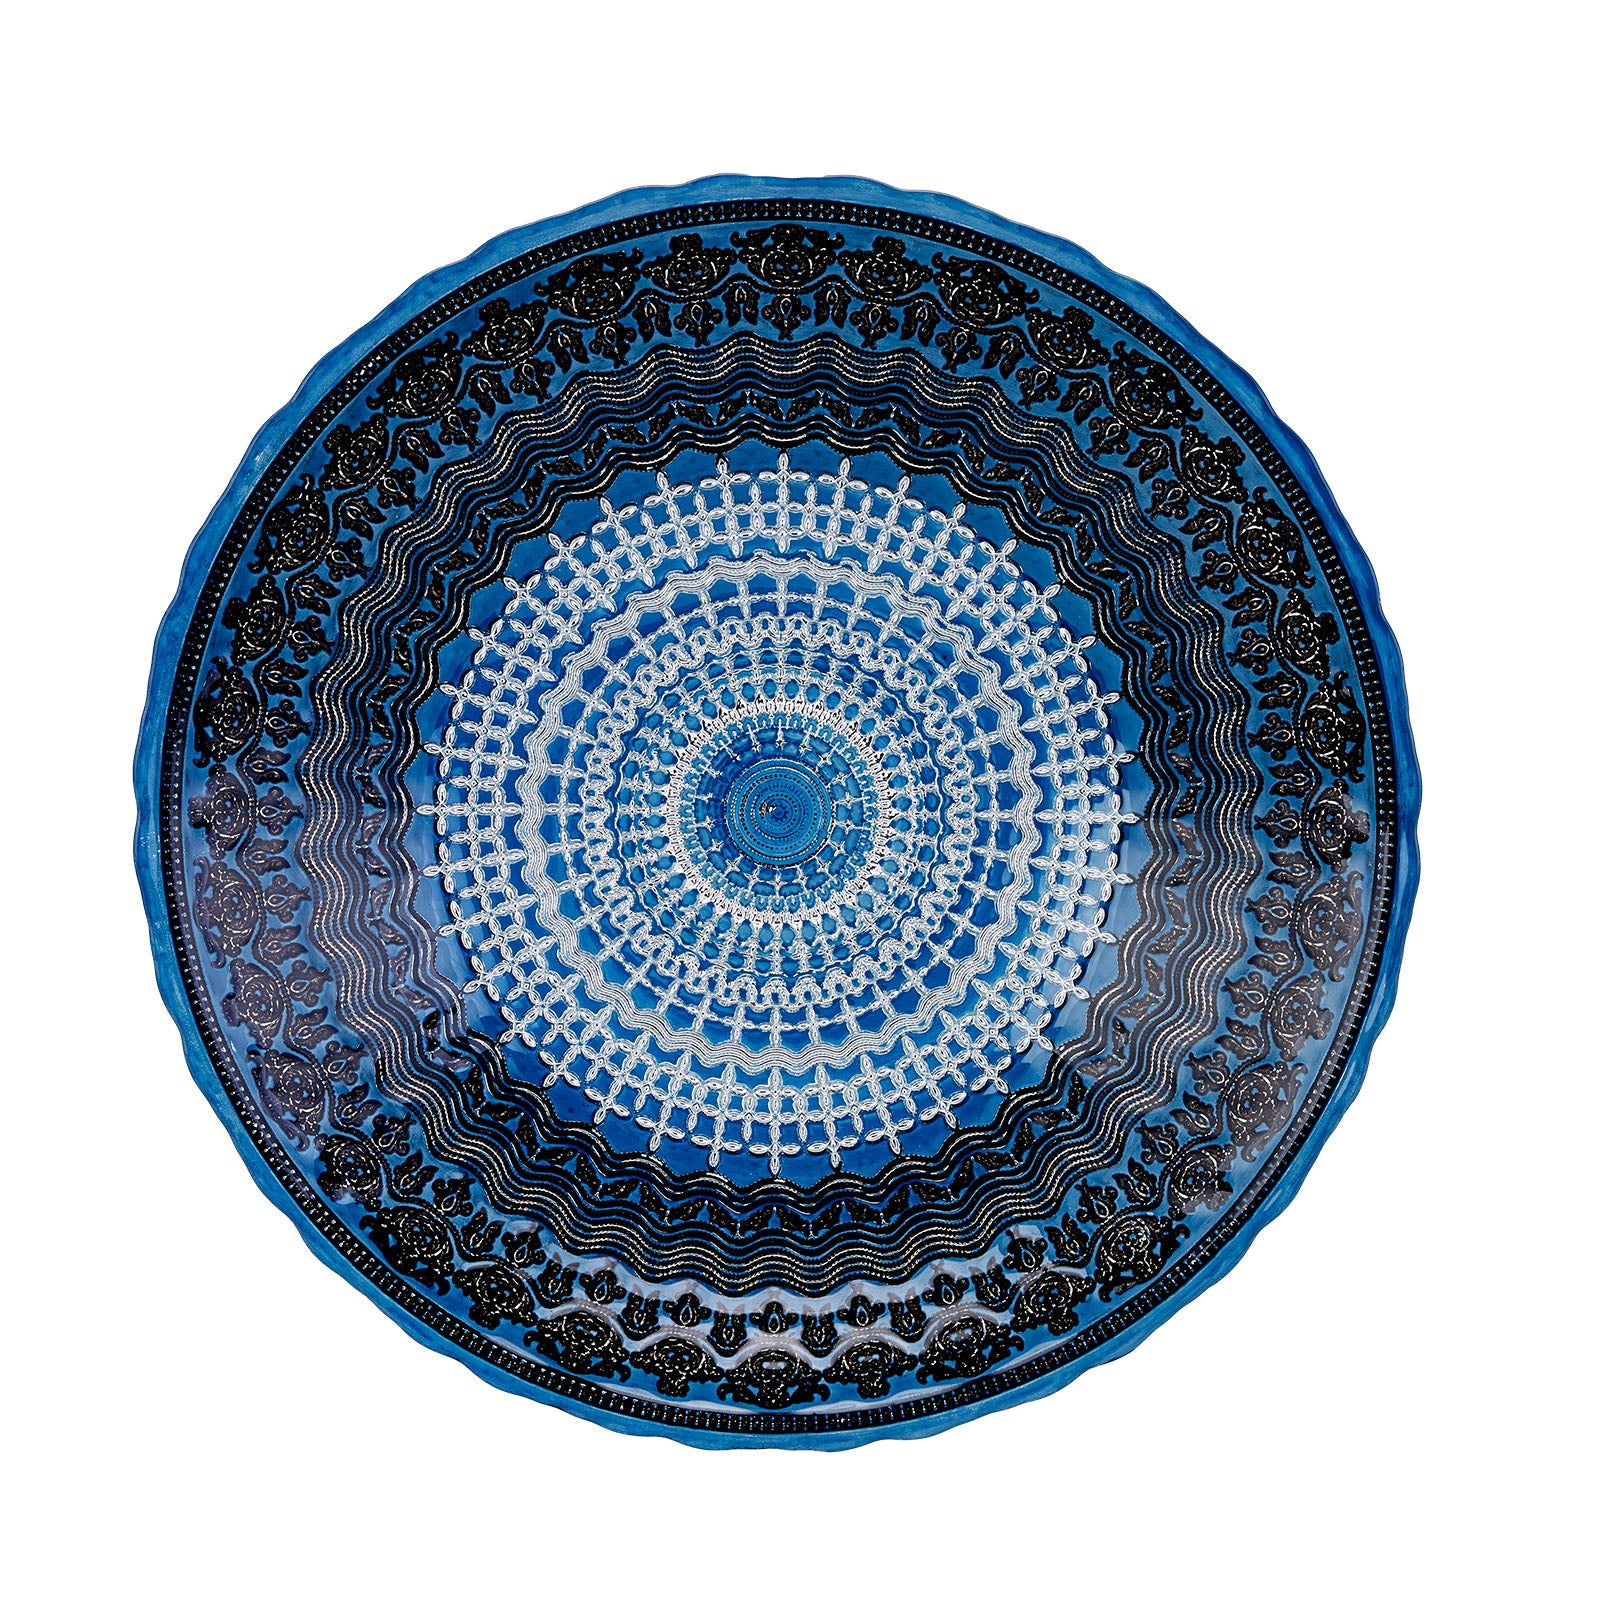 Karaca Mabel Decorative Plate 153.19.01.1325